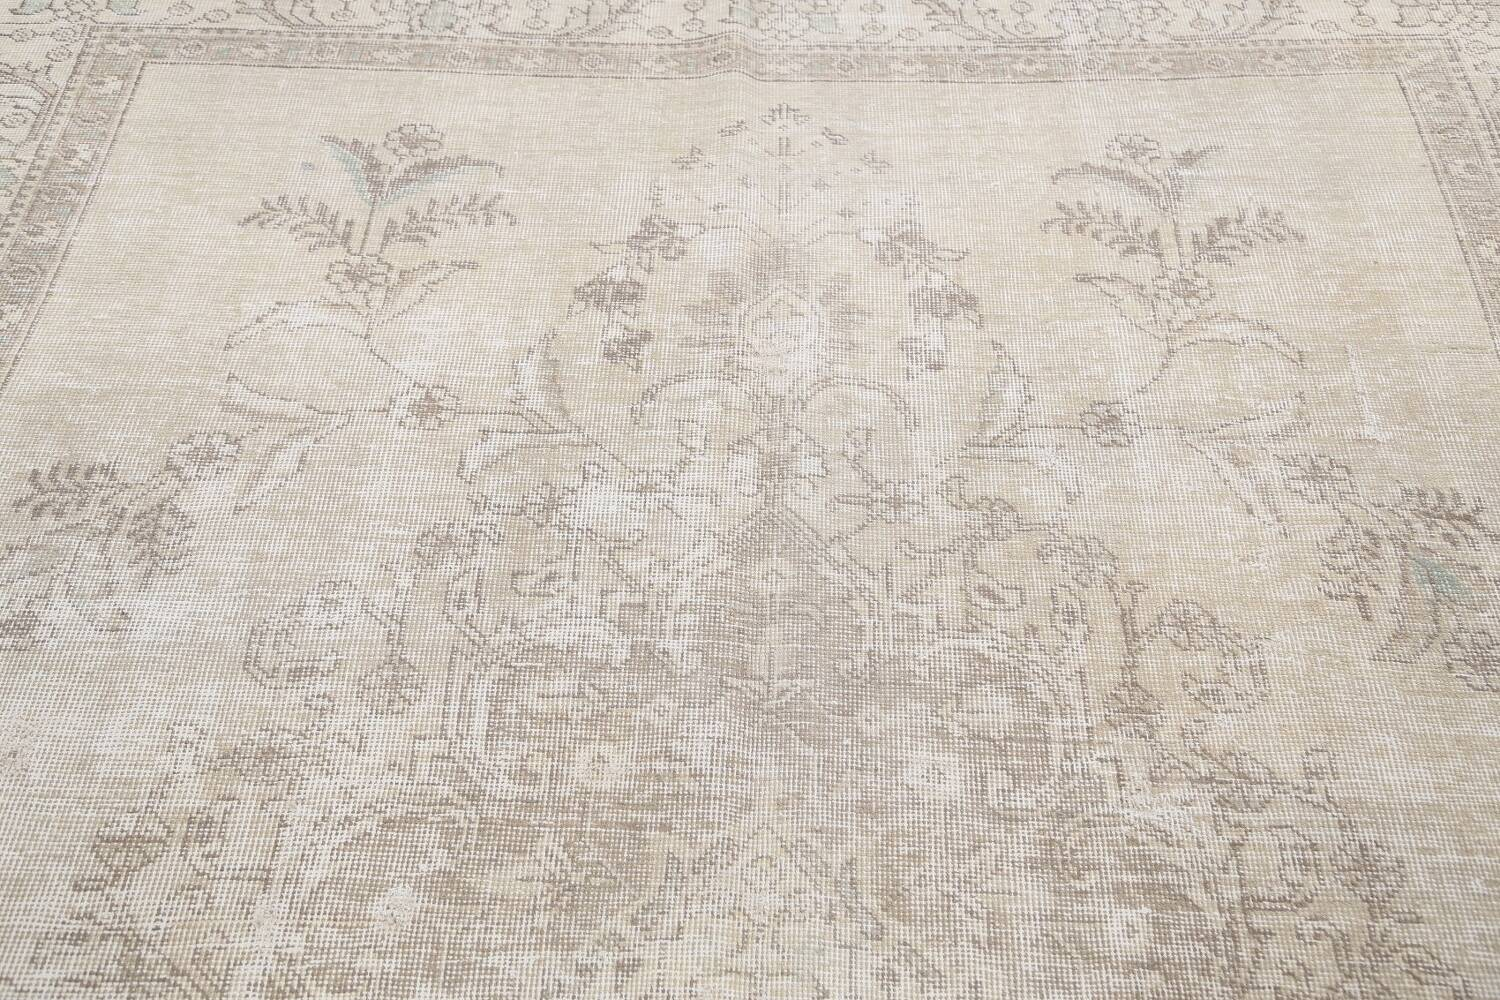 Muted Distressed Floral Tabriz Persian Area Rug 6x9 image 12